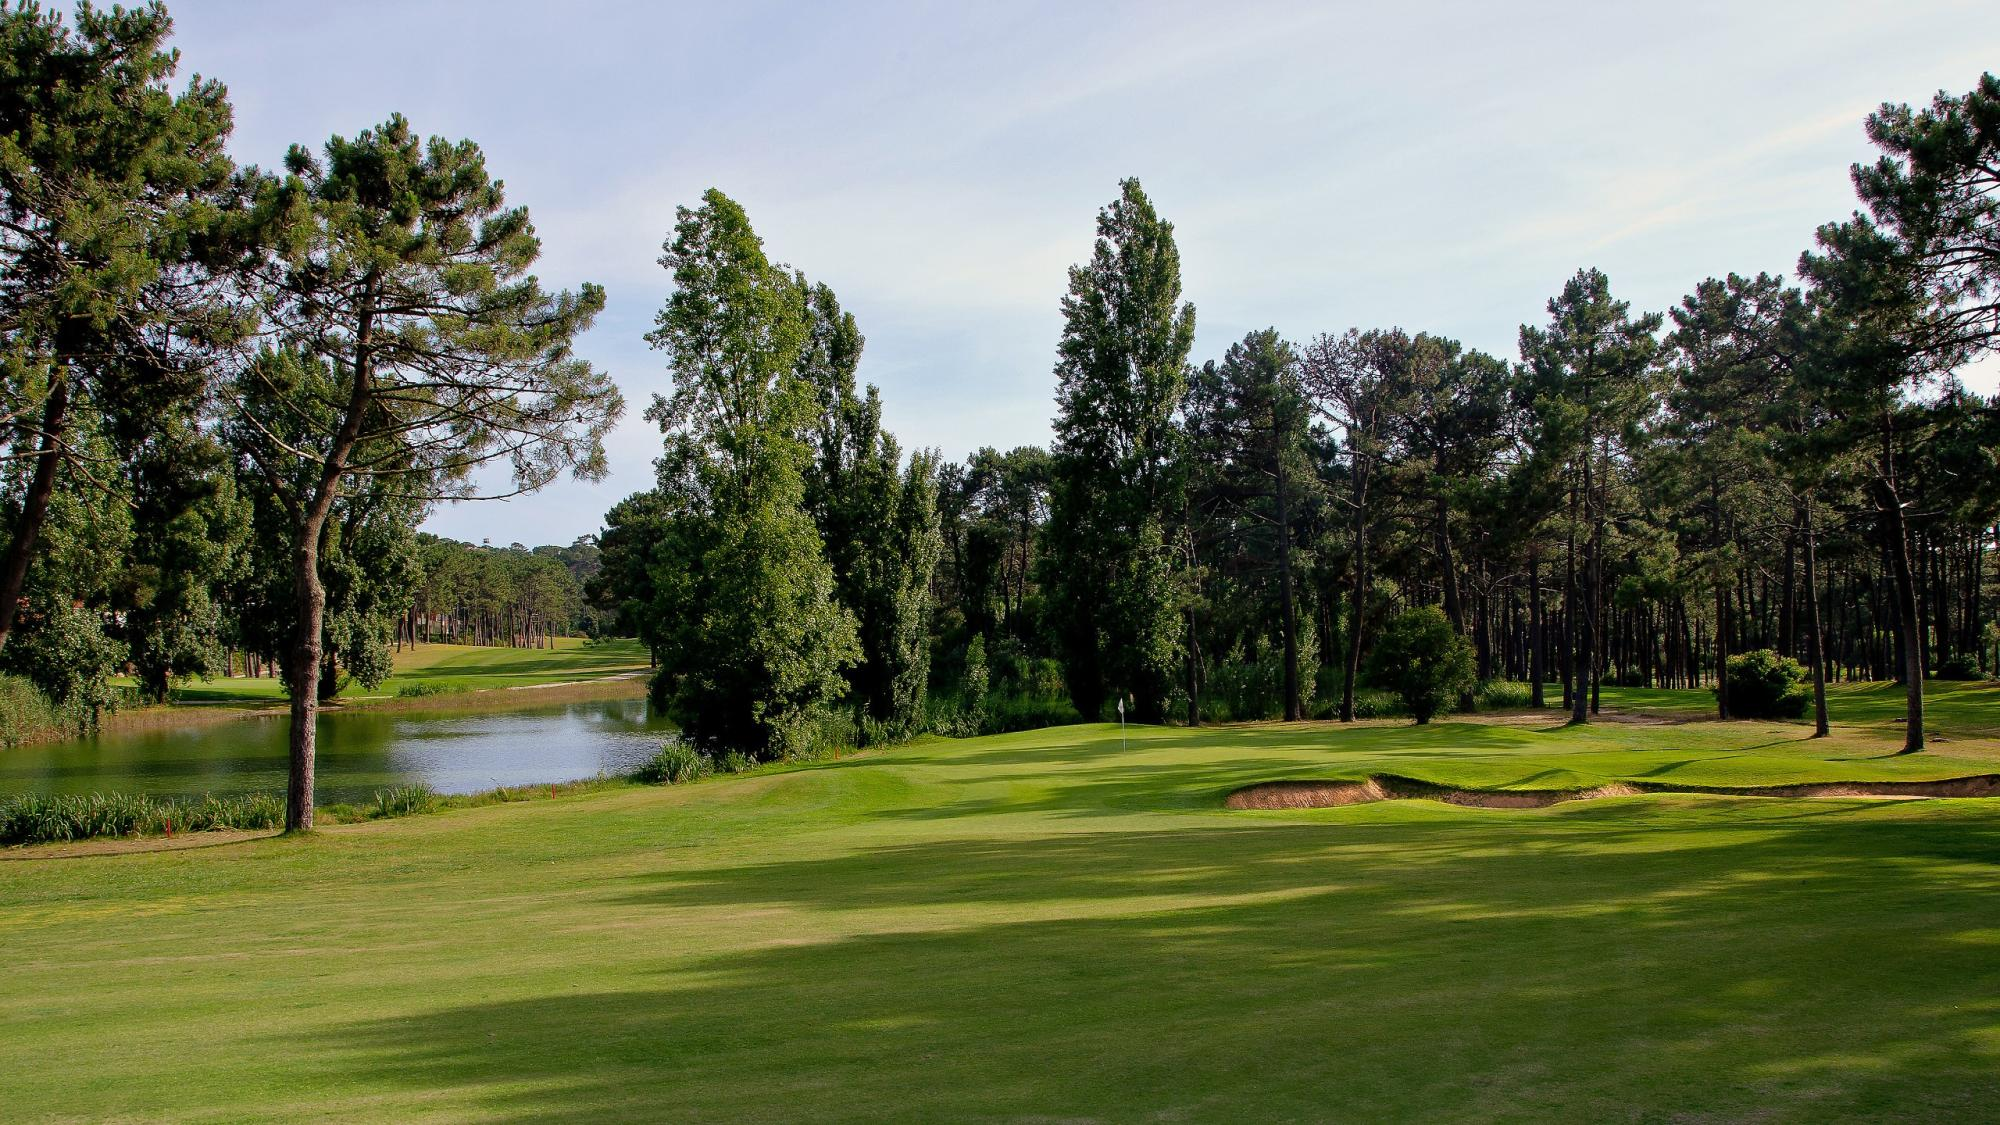 Aroeira 1 Golf Course is one of the finest golf courses in Lisbon